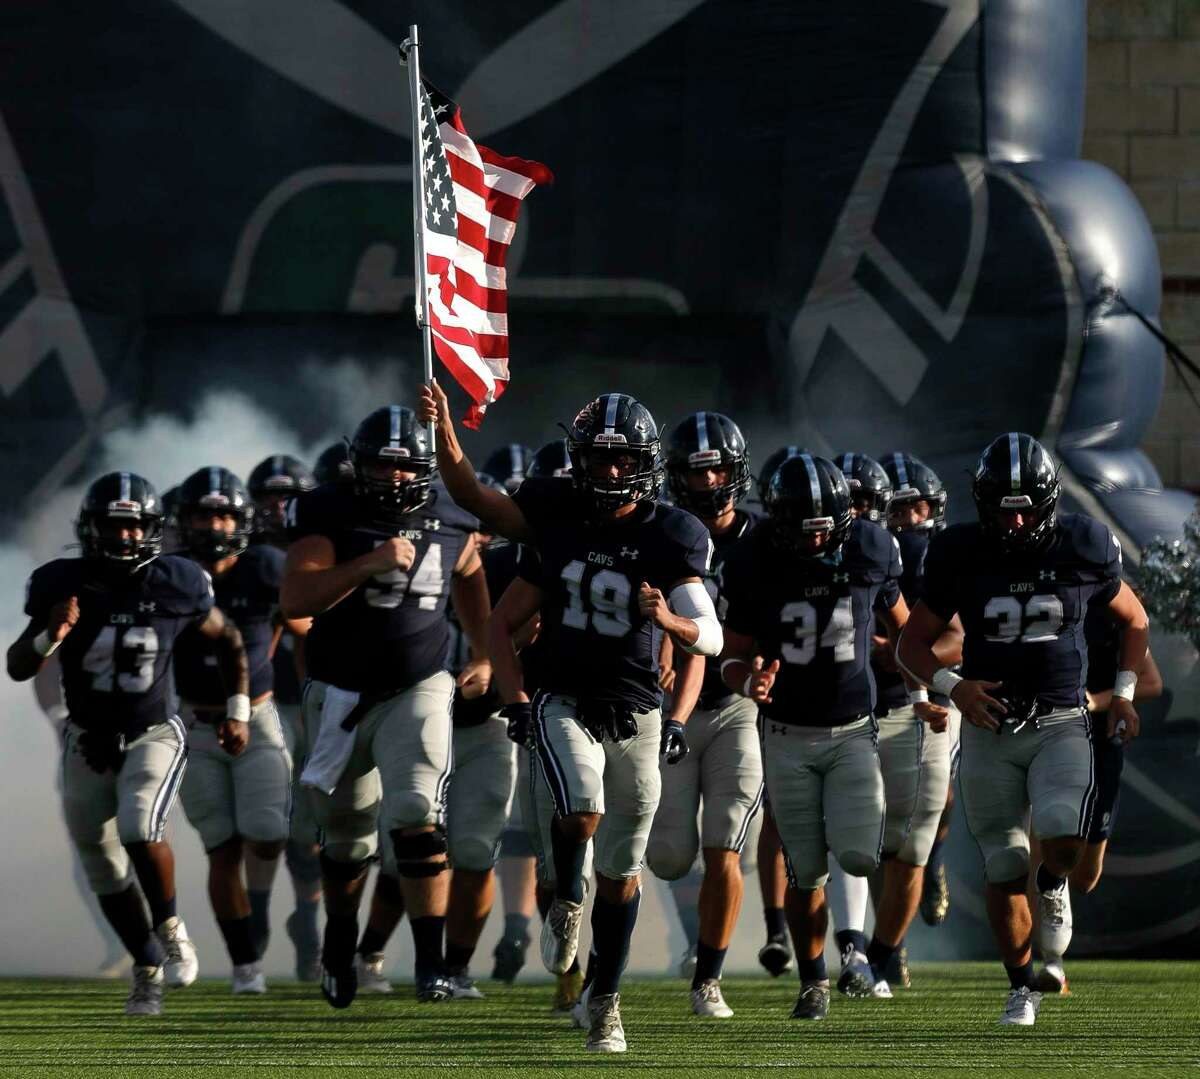 College Park wide receiver Holden Rook (19) holds an American flag as he leads the team onto the field before a high school football game at Woodforest Bank Stadium, Saturday, Sept. 18, 2021, in Shenandoah.